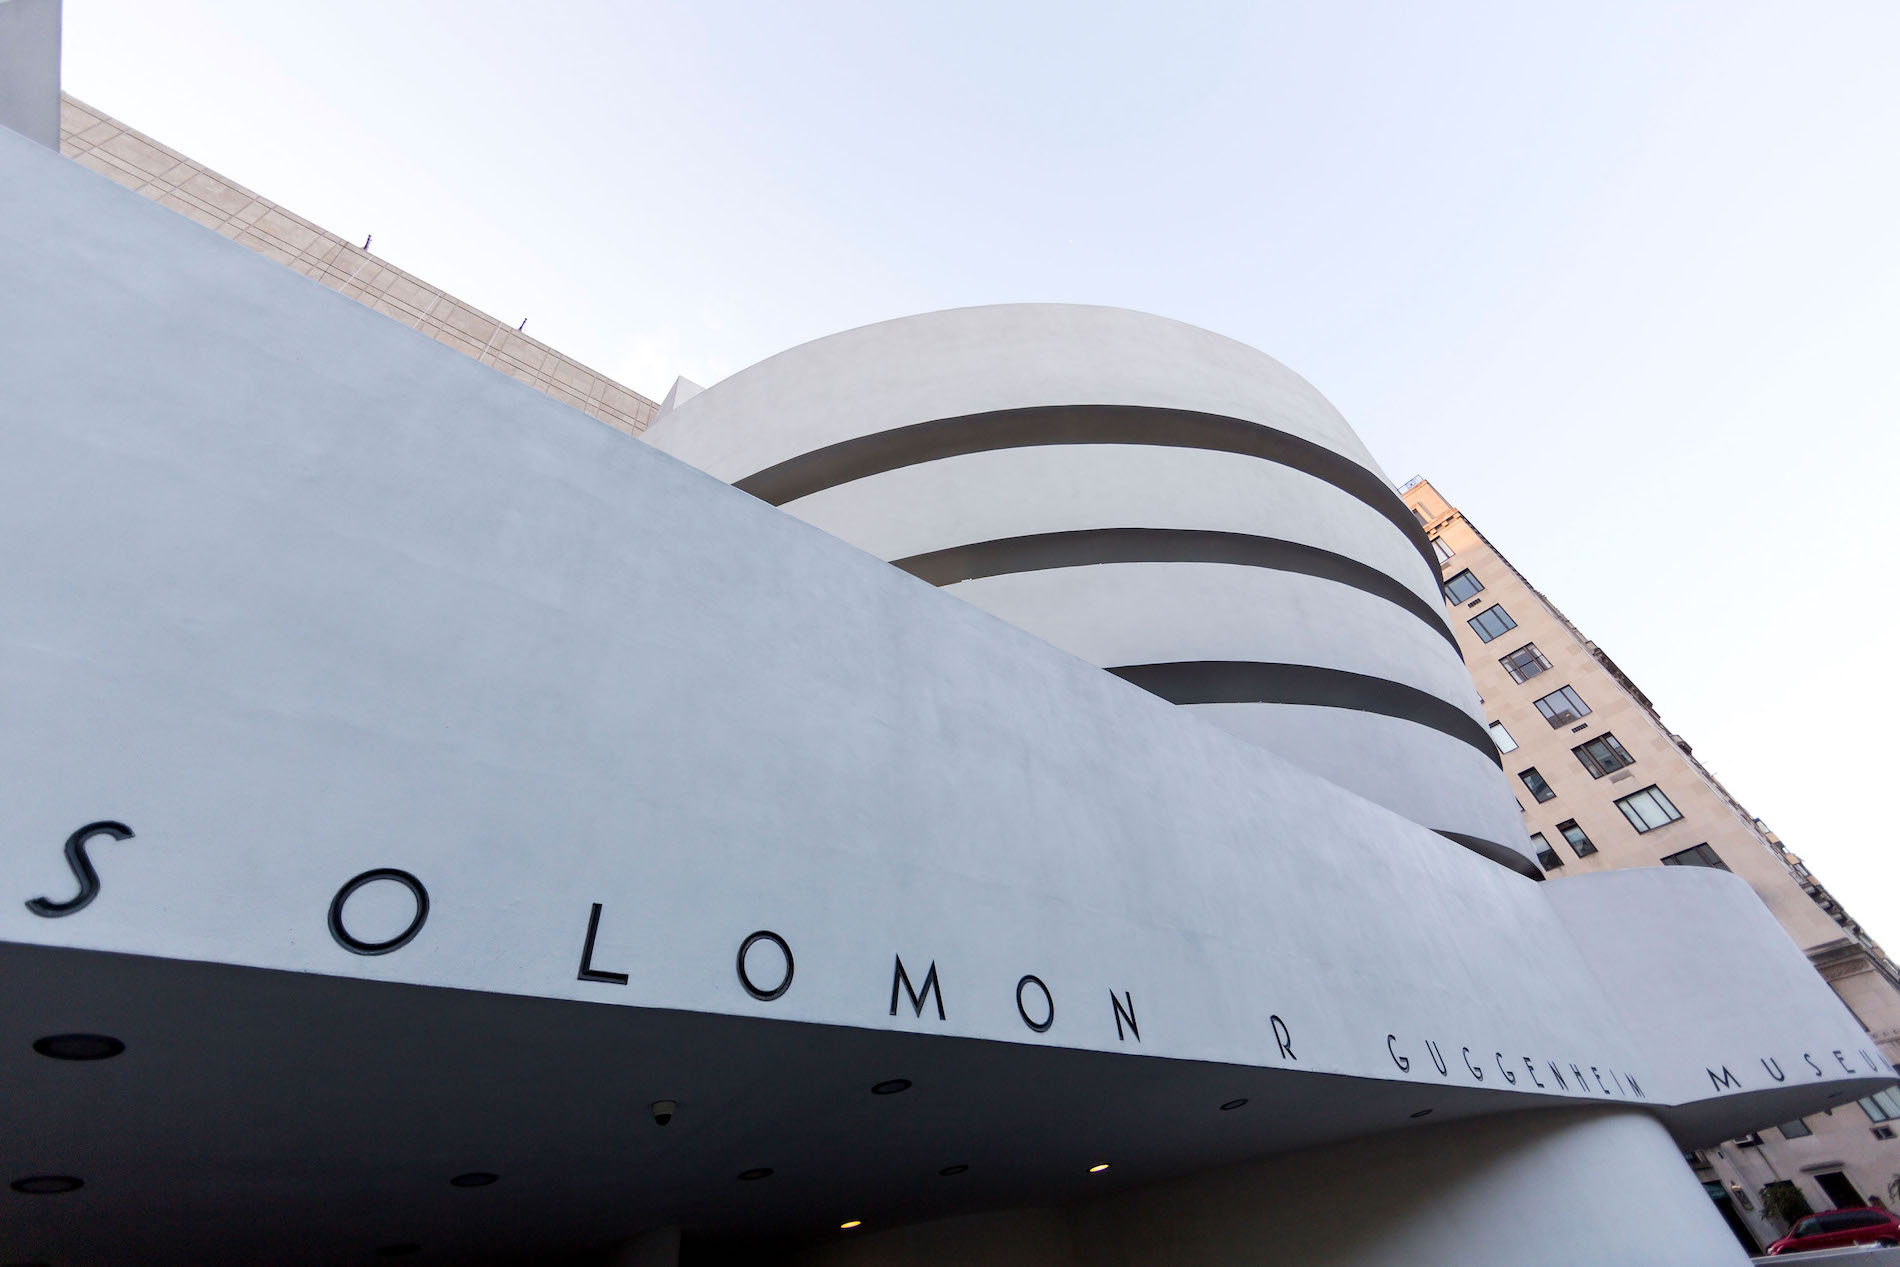 Art Installers and Maintenance Workers at the Guggenheim Have Voted 'Yes' to Joining a Union